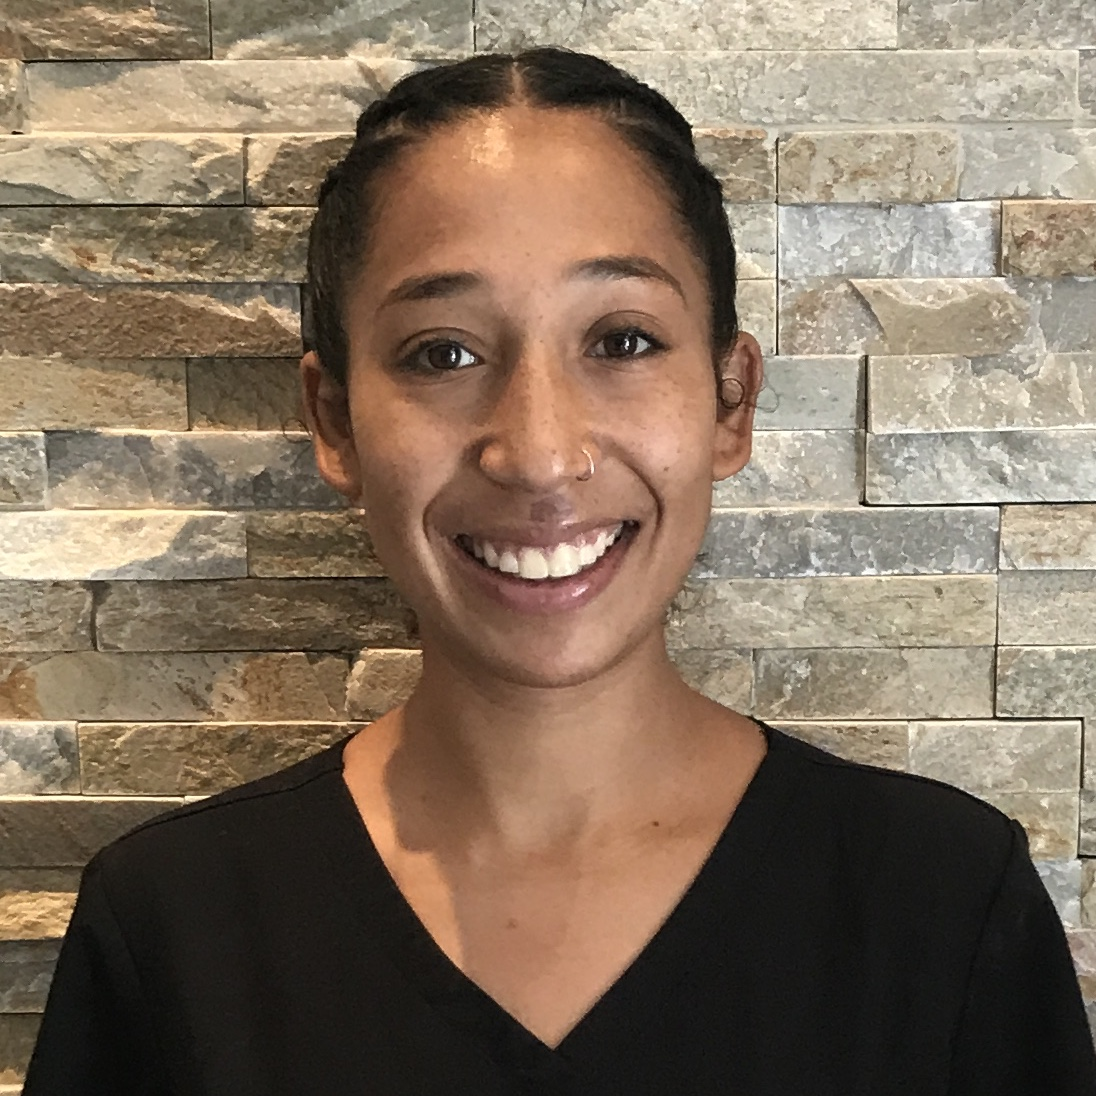 Jasmine - Certified TherapistShe approaches massage through Deep Tissue, Therapeutic Clinical Techniques & Sensory Repatterining. Jasmine believes massage is essential to nourish our bodies. She is knowledgeable, intuitive, powerful, and has previously worked as an EMT!